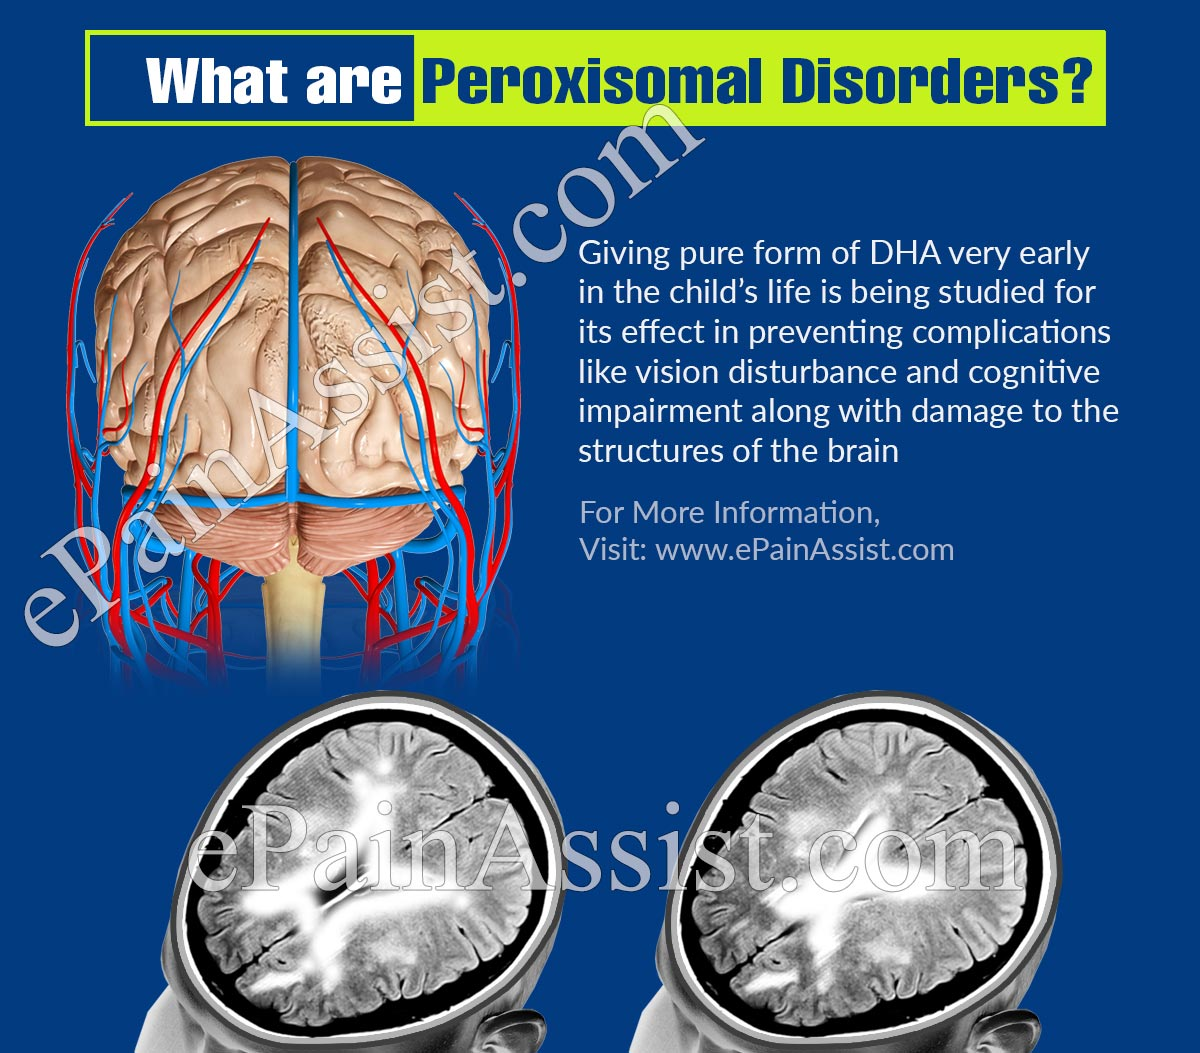 What are Peroxisomal Disorders?